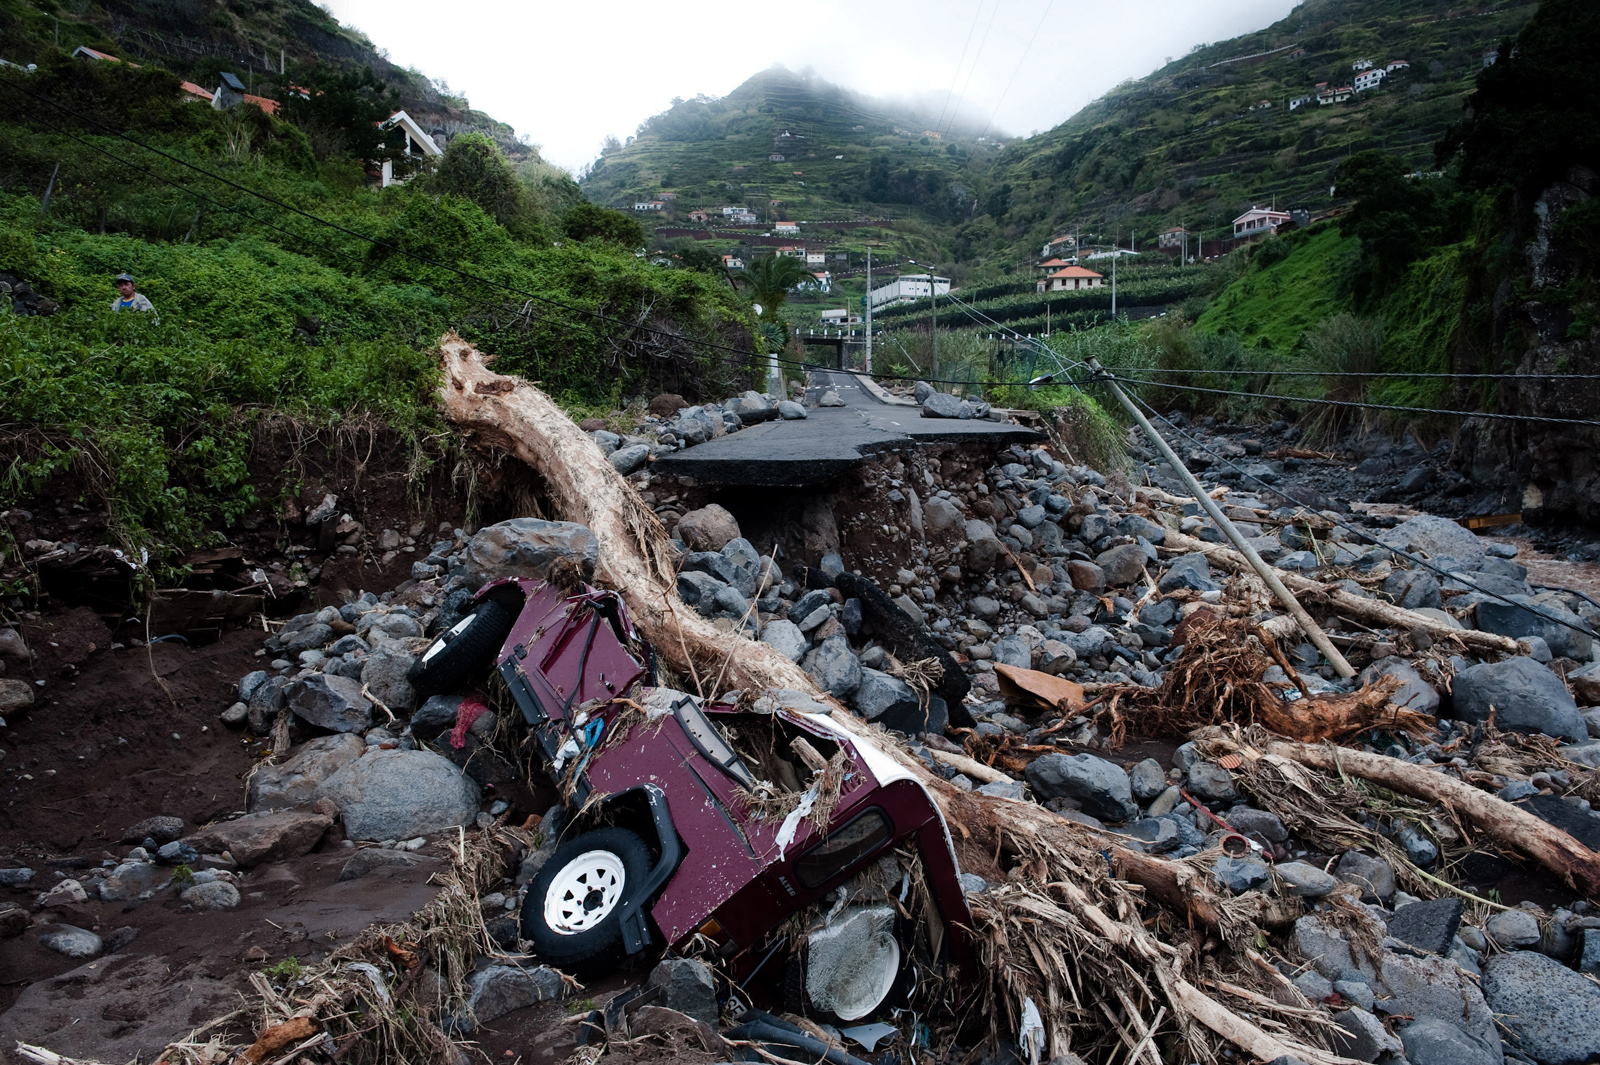 FLOODS IN MADEIRA ISLAND